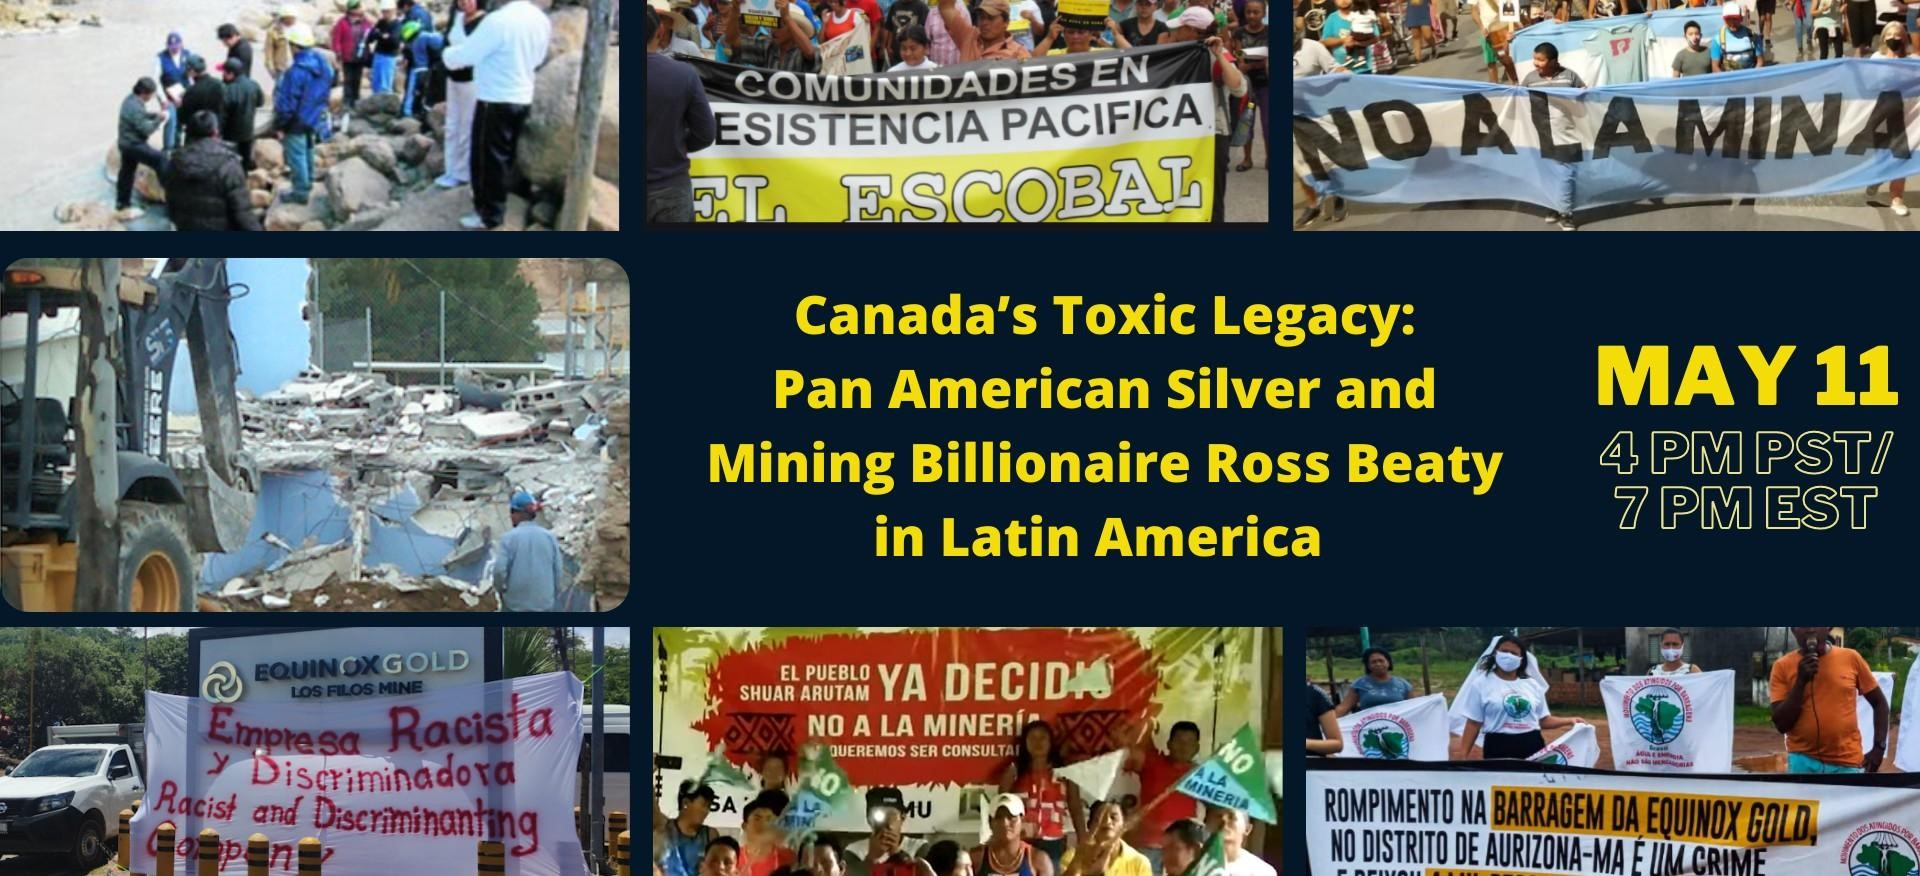 Canada's Toxic Legacy: Pan American Silver and Mining Billionaire Ross Beaty in Latin America